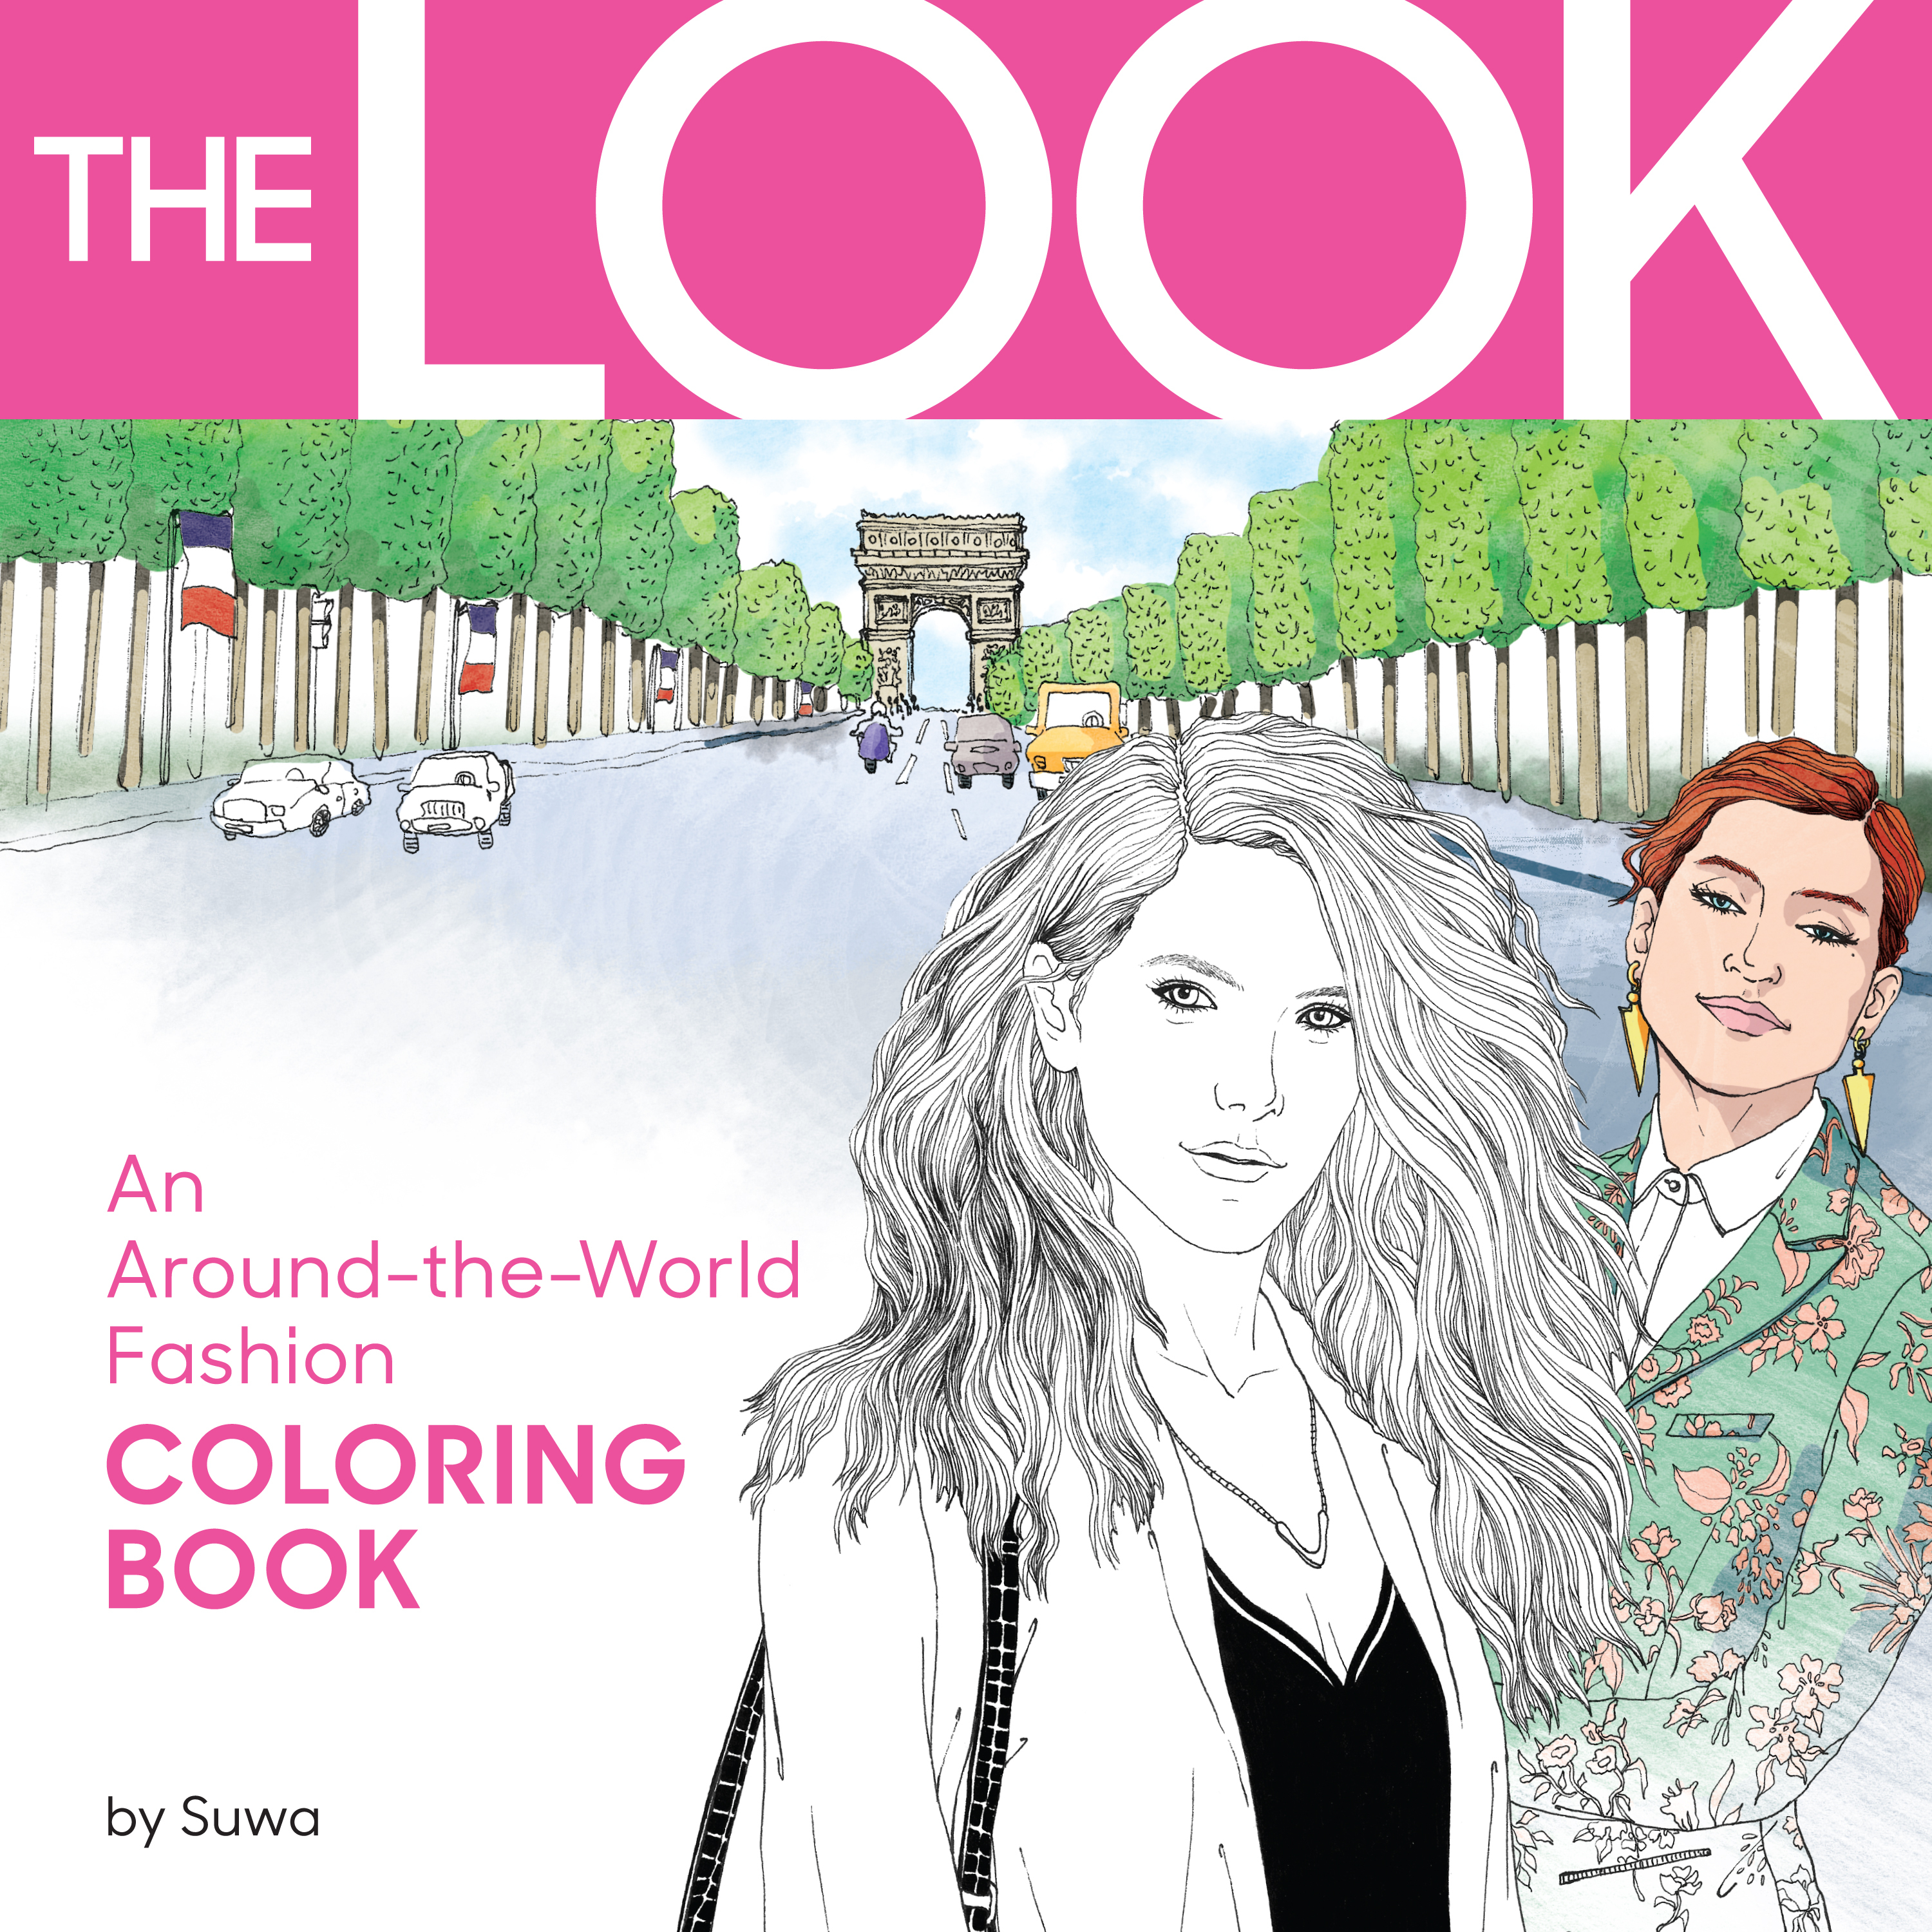 The Look: An Around-the-World Fashion Coloring Book by Suwa